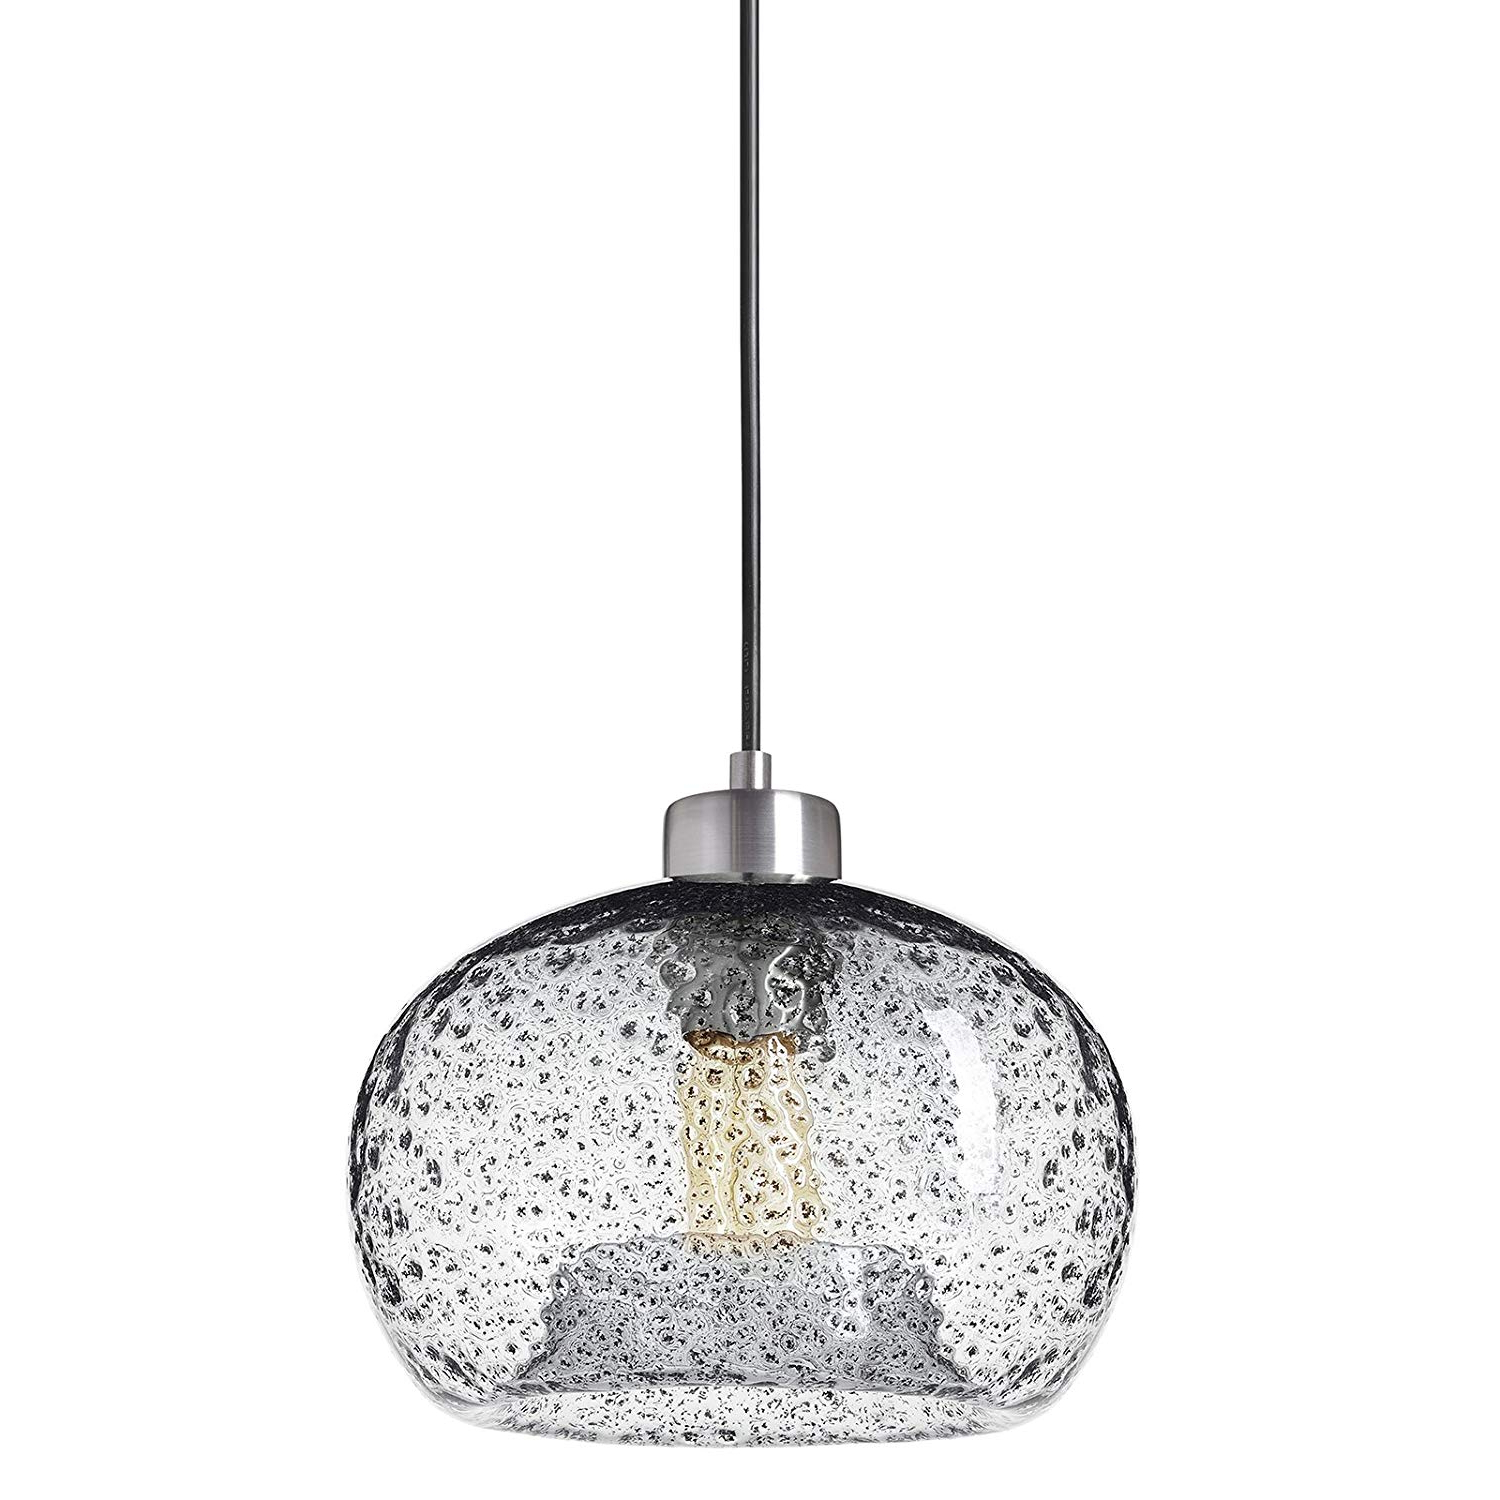 Casamotion Pendant Light Handblown Glass Drop Ceiling Lights, Rustic  Hanging Light Seeded Glass With Black Sand Powder (Brushed Nickel, Clear) Regarding Well Known Granville 2 Light Single Dome Pendants (View 4 of 25)